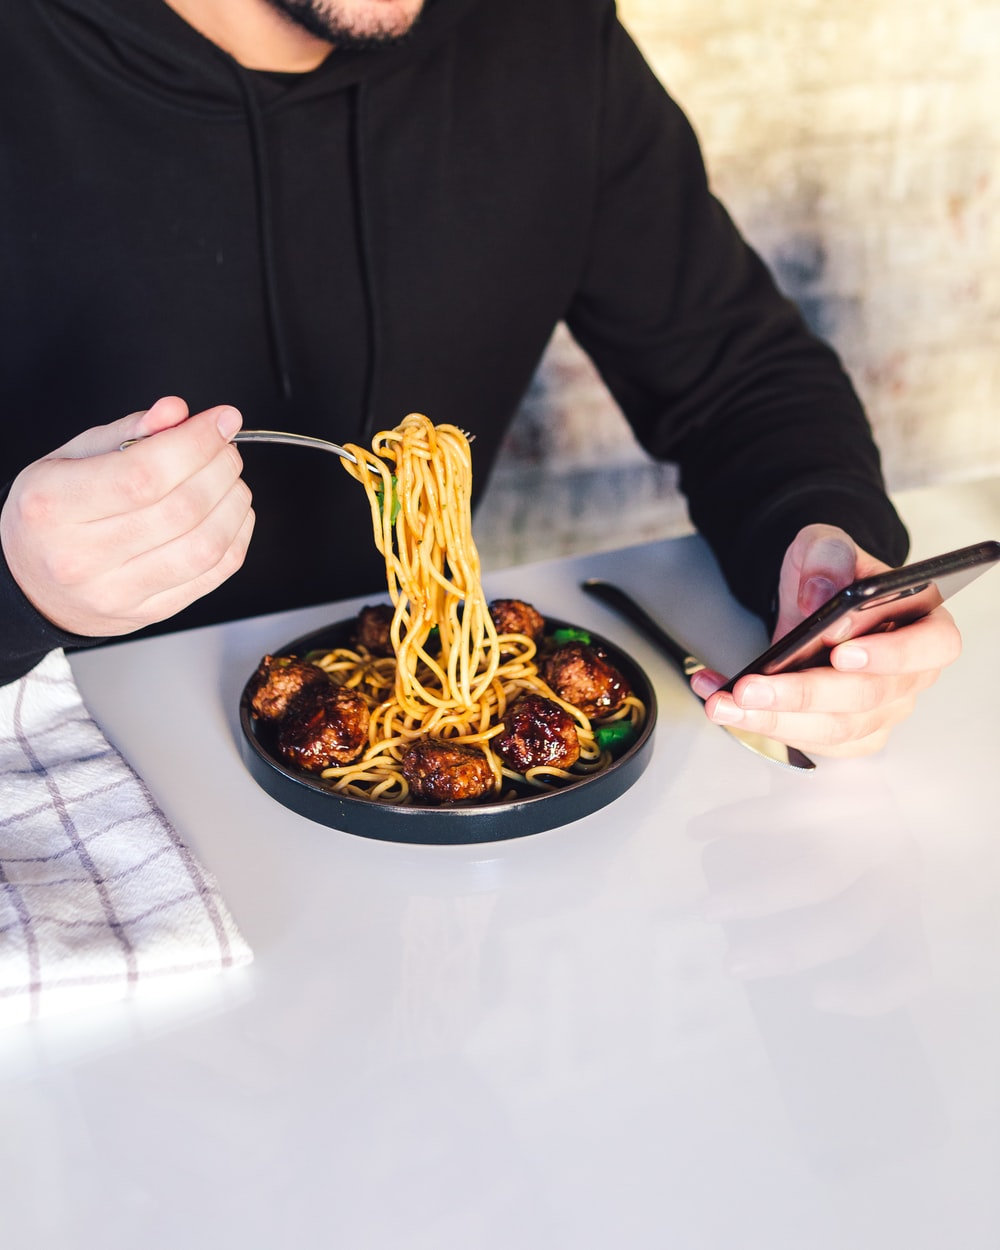 man eating cooked noodle while using phone